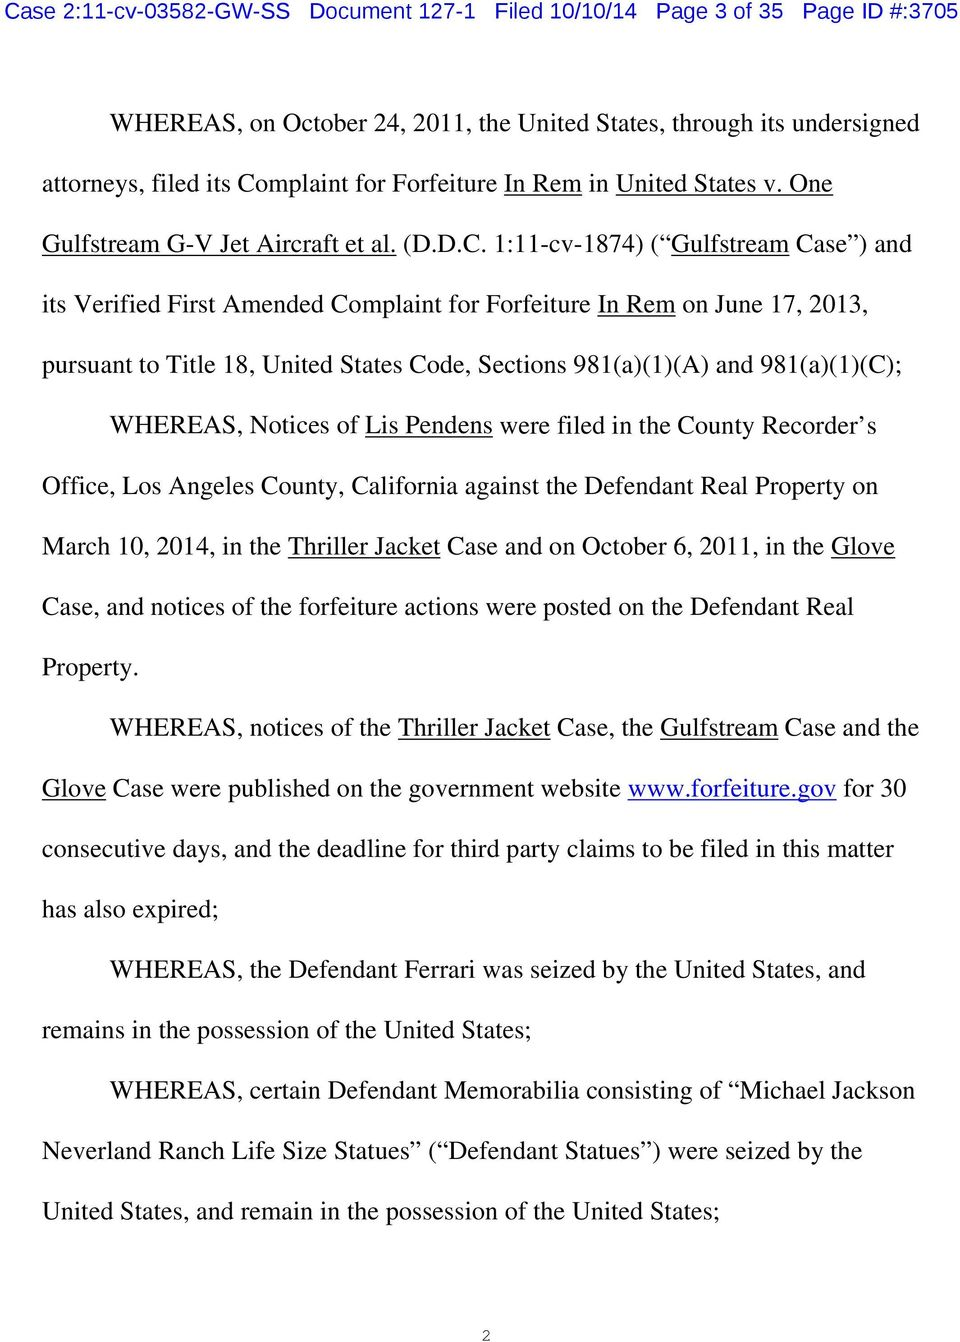 1:11-cv-1874) ( Gulfstream Case ) and its Verified First Amended Complaint for Forfeiture In Rem on June 17, 2013, pursuant to Title 18, United States Code, Sections 981(a)(1)(A) and 981(a)(1)(C);